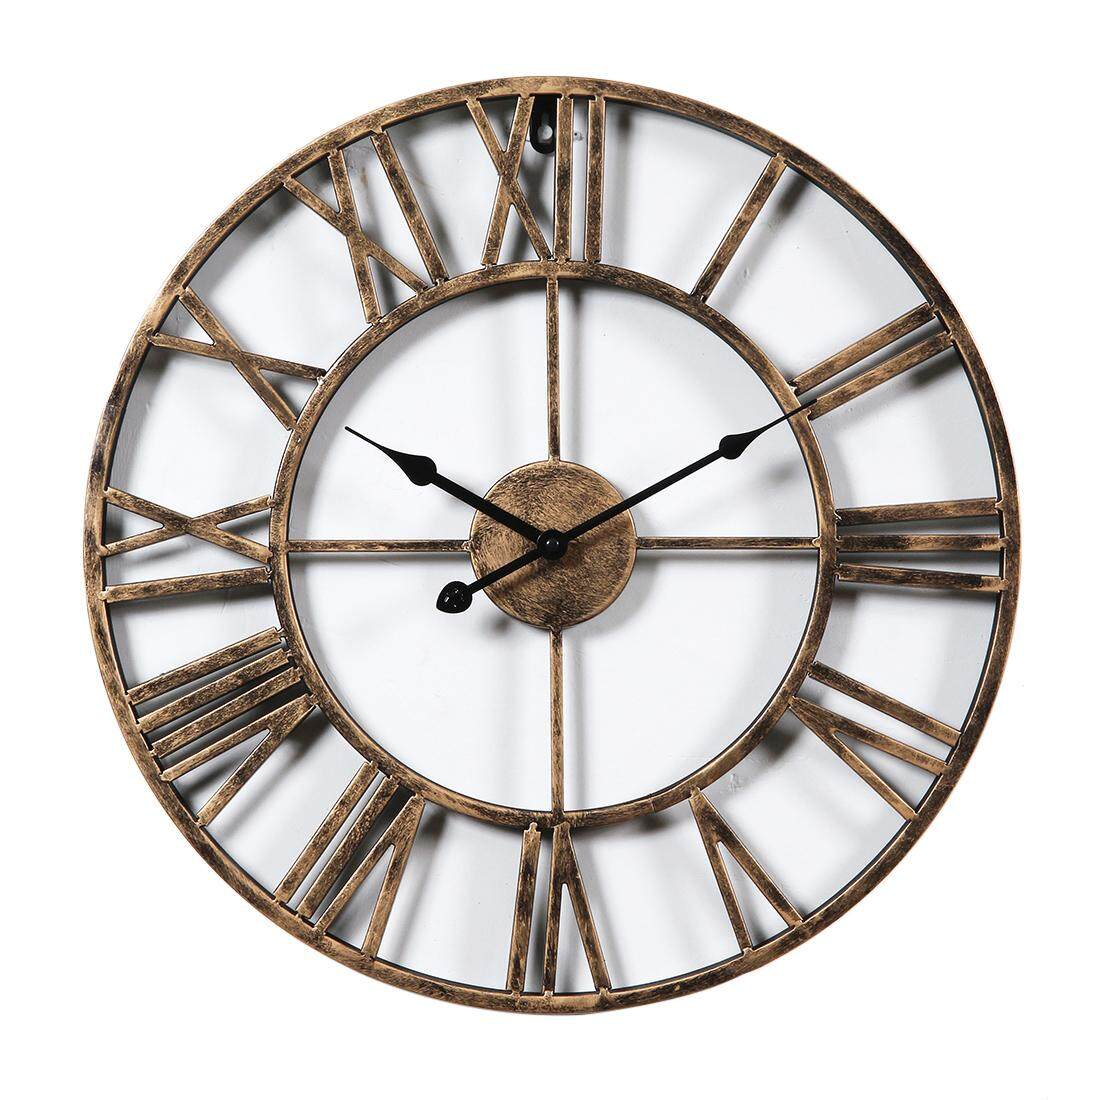 Home Clocks Buy At Best Price In Malaysia Lazada Jam Tangan Swatch Original 100  Ycs584 Travel Chic Elegant 360dsc Fashion Iron Hollowed Out Wall Clock Simple Creative Living Room Hanging Golden